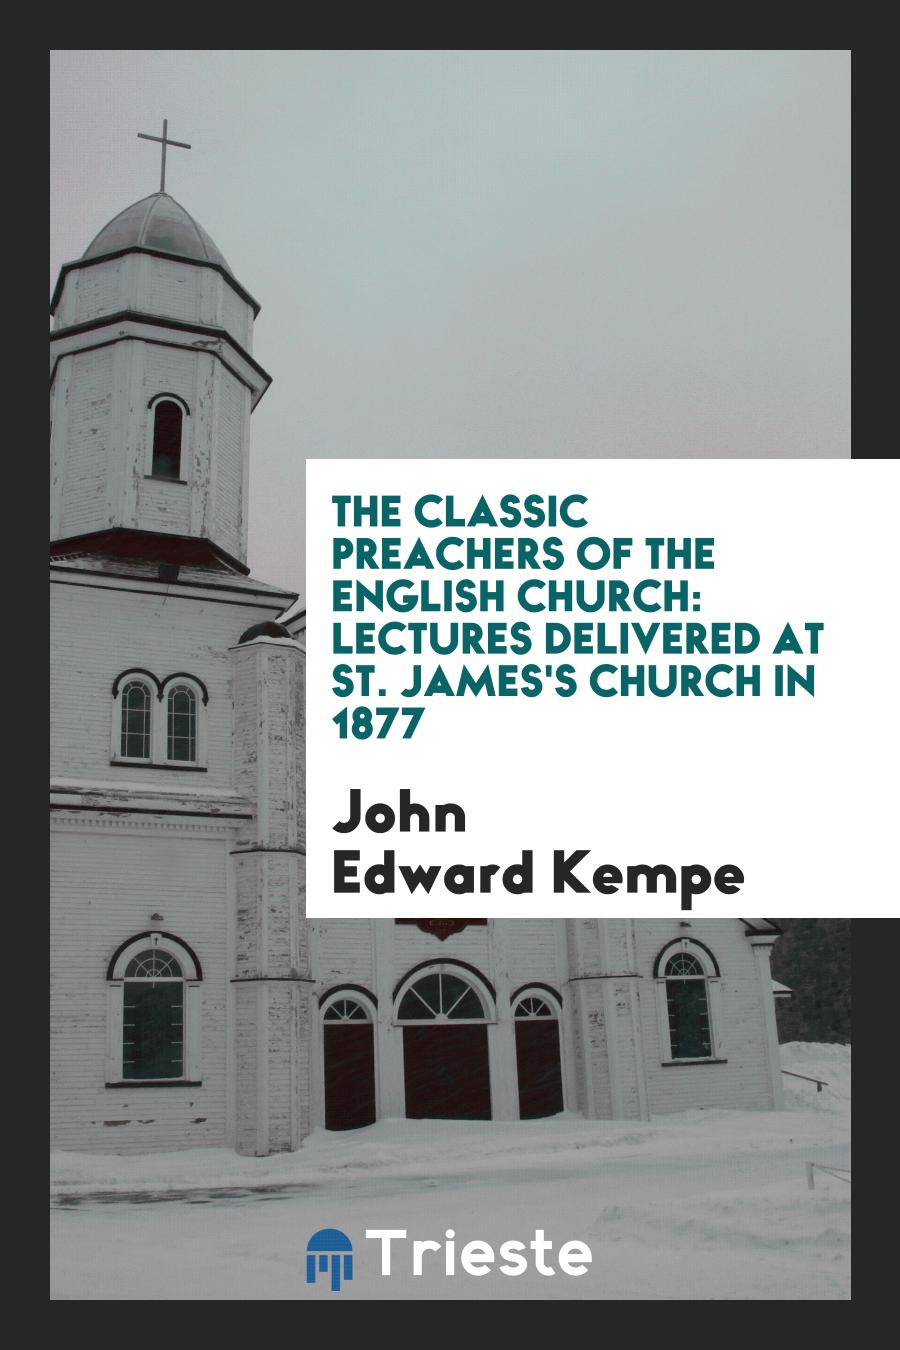 The Classic Preachers of the English Church: Lectures Delivered at St. James's Church in 1877